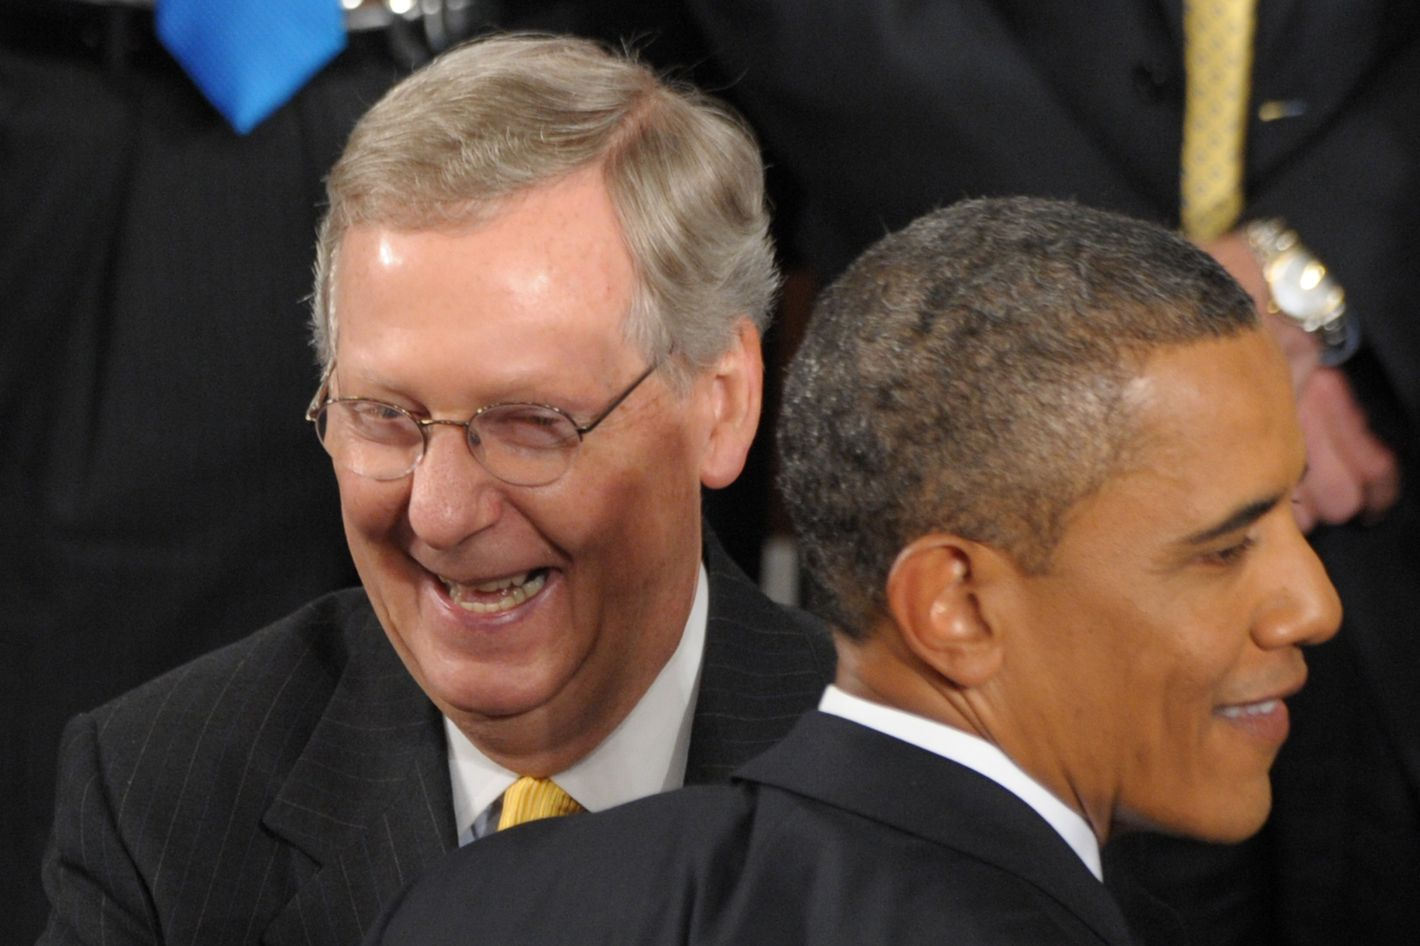 Senate Minority Leader Mitch McConnell greets US President Barack Obama following Obama's address to a Joint Session of Congress about the US economy and job creation at the US Capitol in Washington, DC, September 8, 2011.